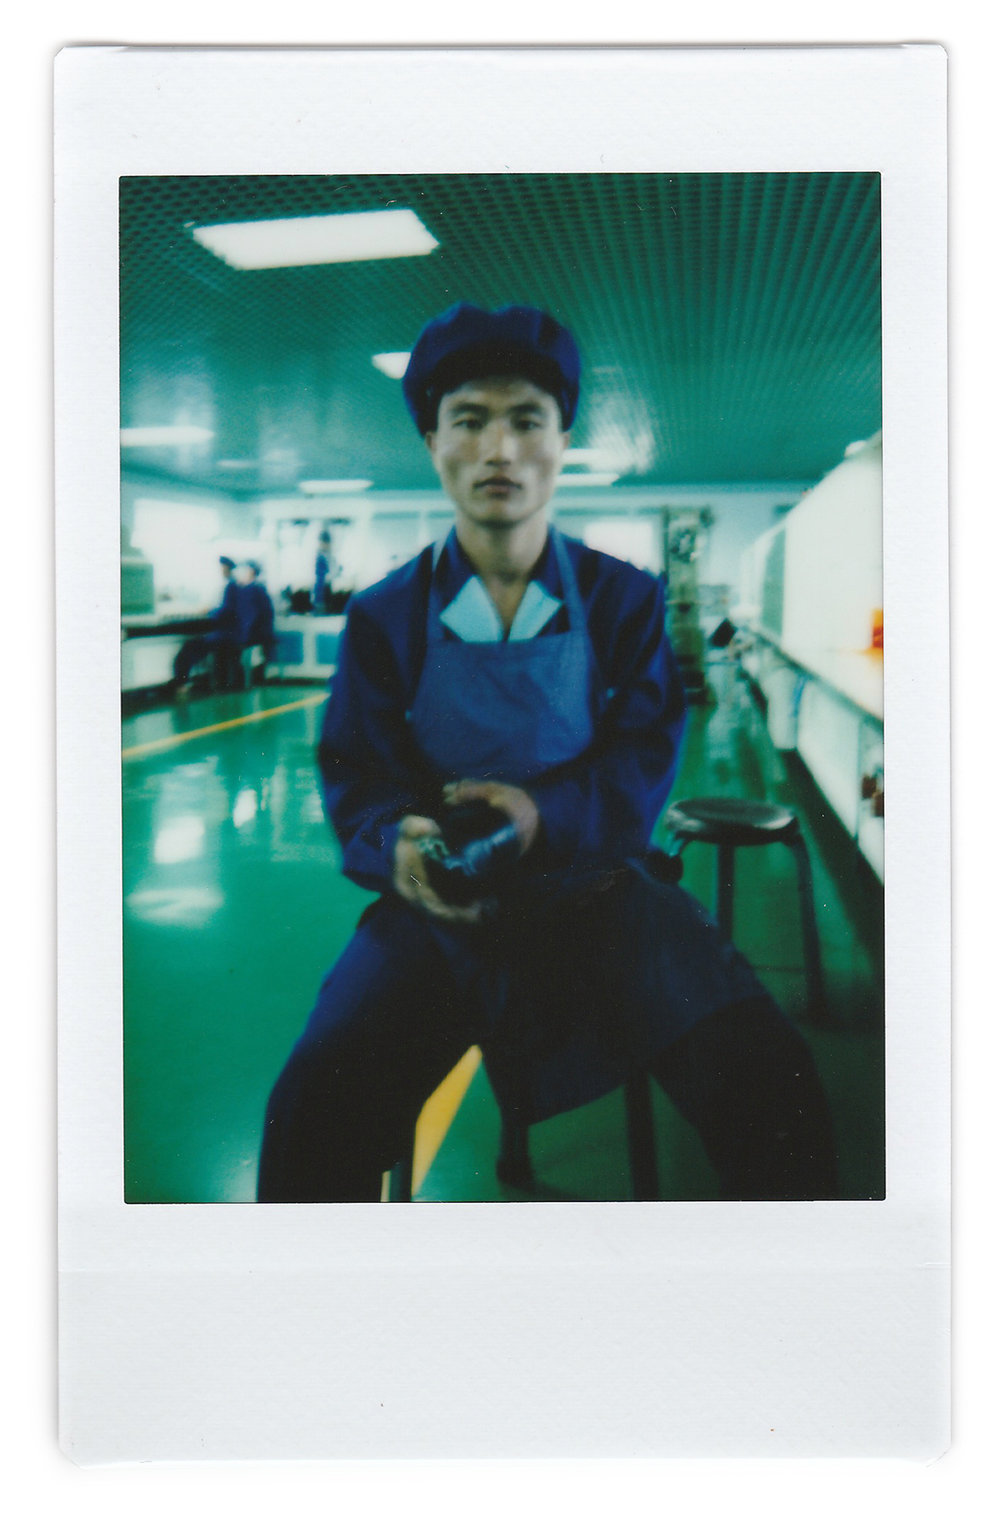 "In this June 22, 2016, photo made with an instant camera, Kang Jong Jin, a 28-year old former soldier who attaches soles onto shoes at a shoe factory in Wonsan, North Korea, poses for a portrait at his work station. Kang, who has been working longer hours during this 200-day ""speed campaign"" in line with North Korean leader Kim Jong Un's vows to raise the nation's standard of living and energize his five-year plan to develop economy, says that he wants to contribute to Kim's plan by taking courses to improve his scientific and technological skills. (AP Photo/Wong Maye-E)"